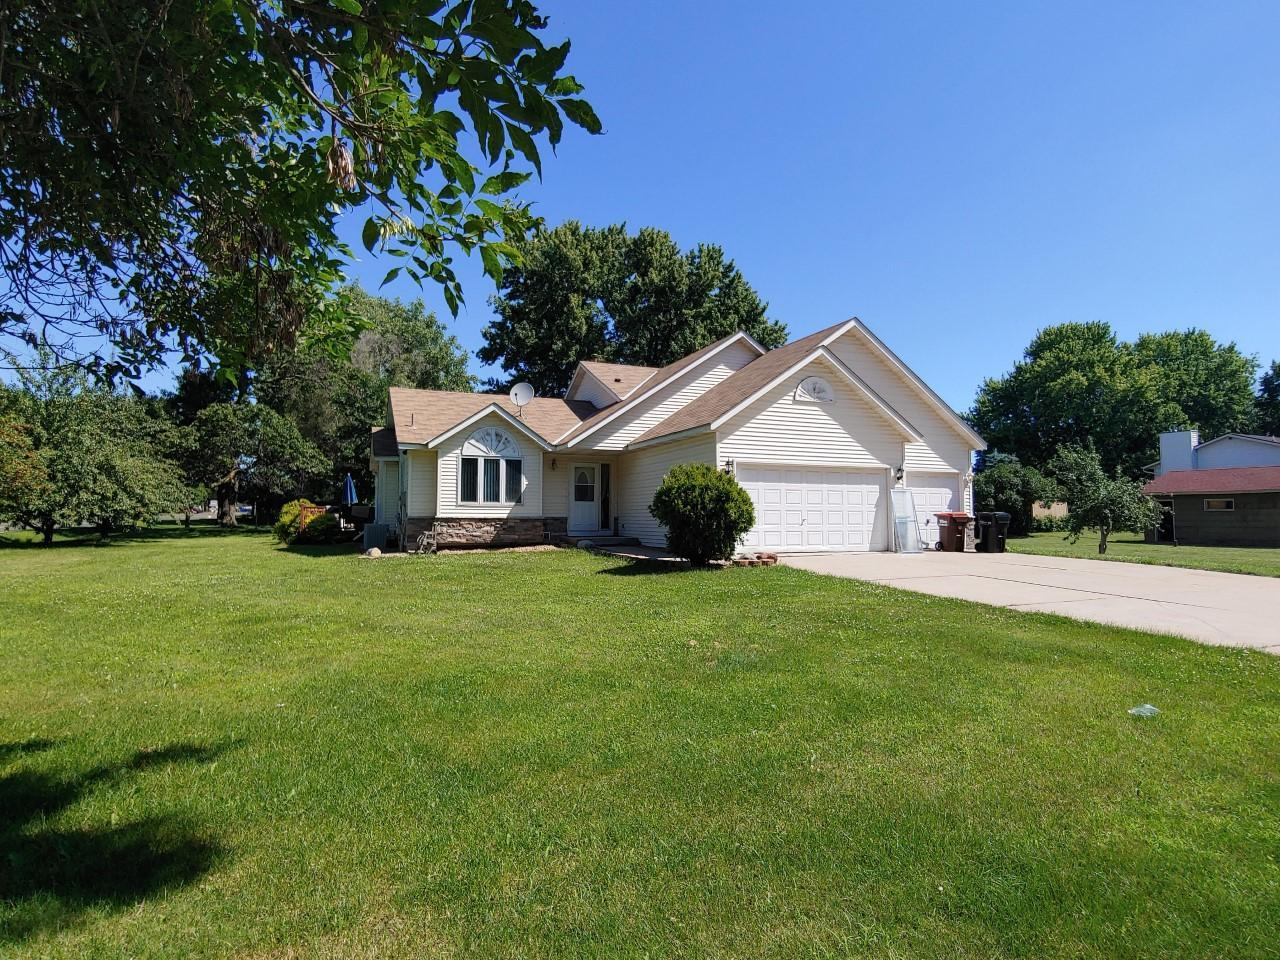 351 Belmont E Property Photo - Maplewood, MN real estate listing